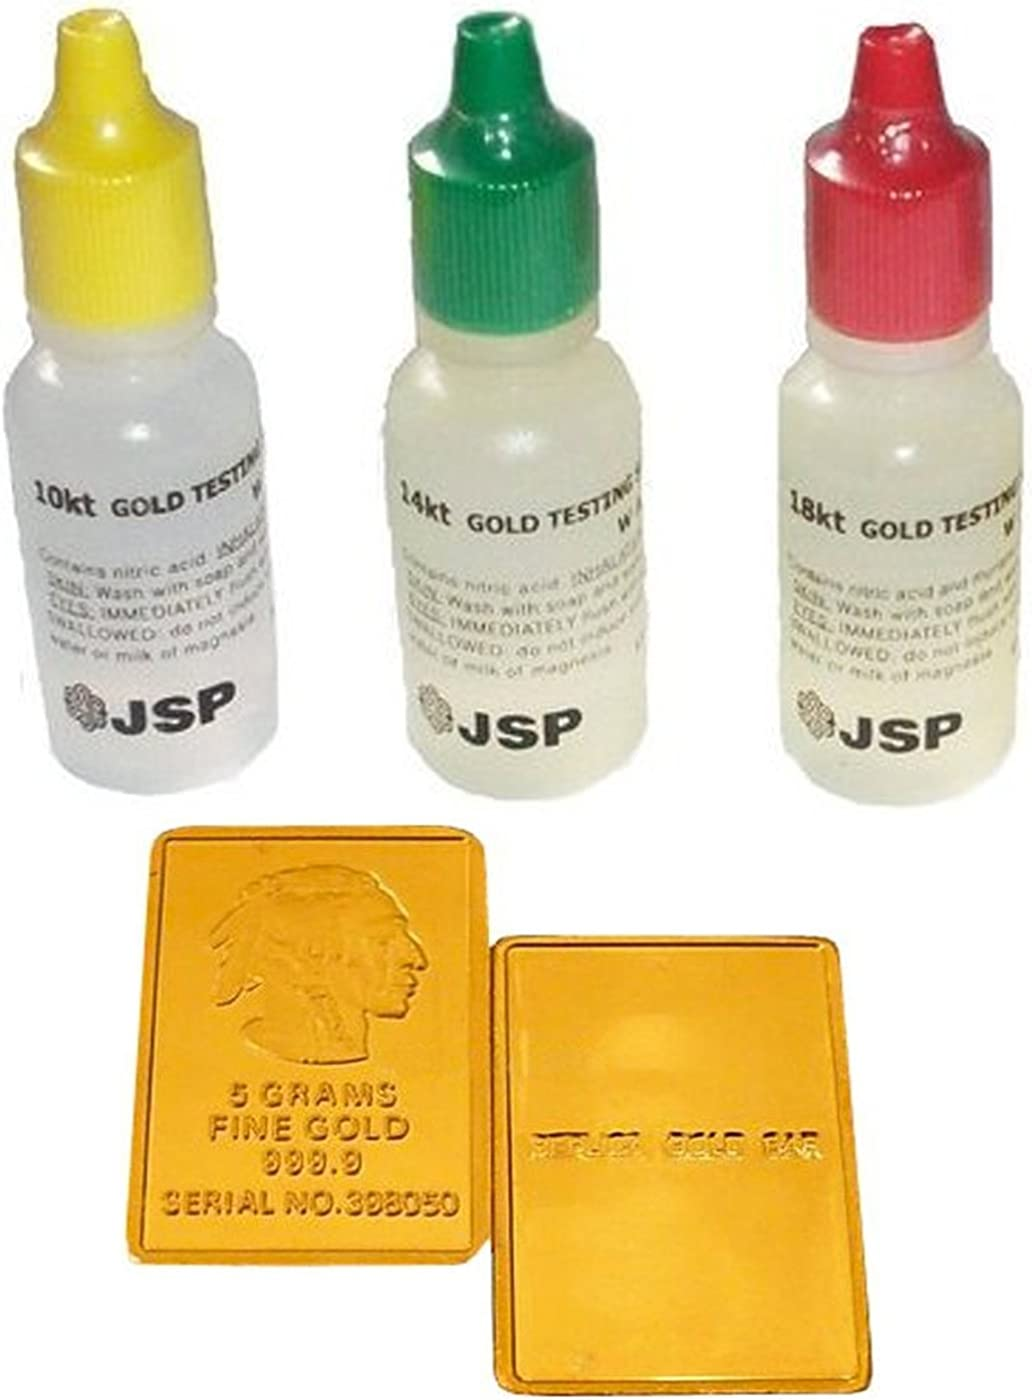 Fake Gold Bar Samples JSP Gold Test Acid Tester Kit 10k 14k 18k Testing Detect Metals Scrap Jewelry